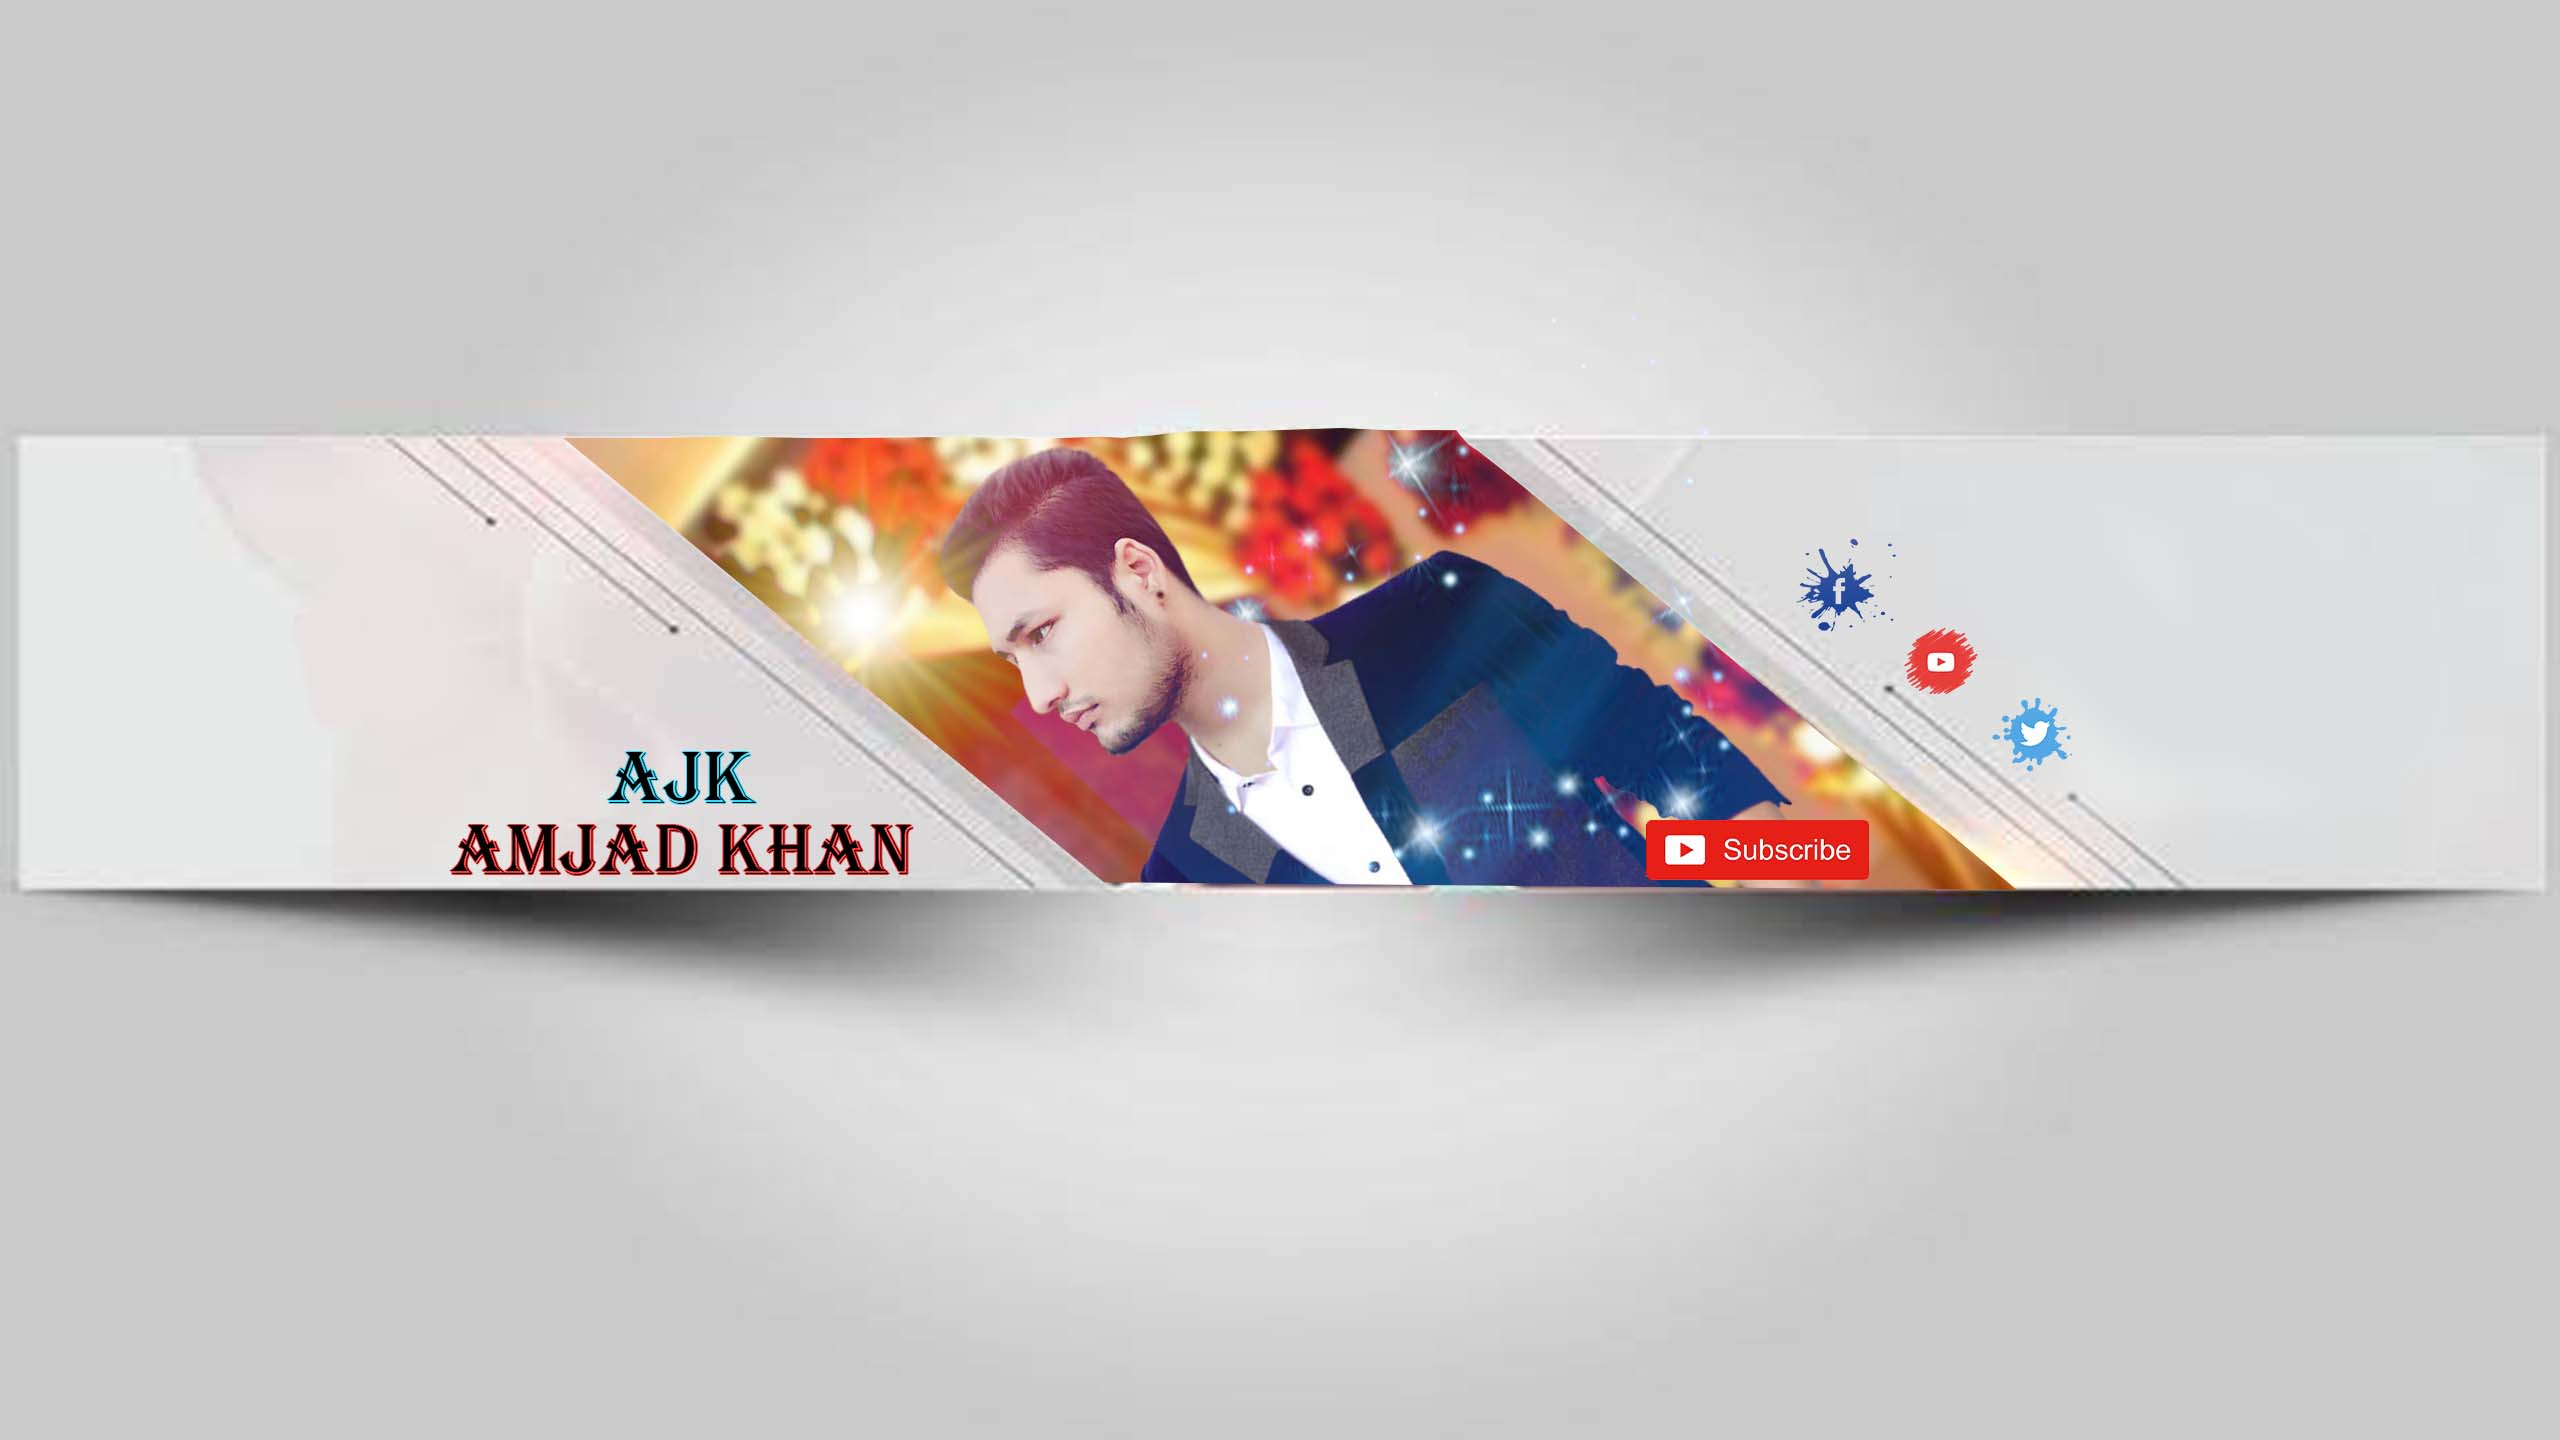 Youtube Channel Art Youtube Banner Template Psd File Download